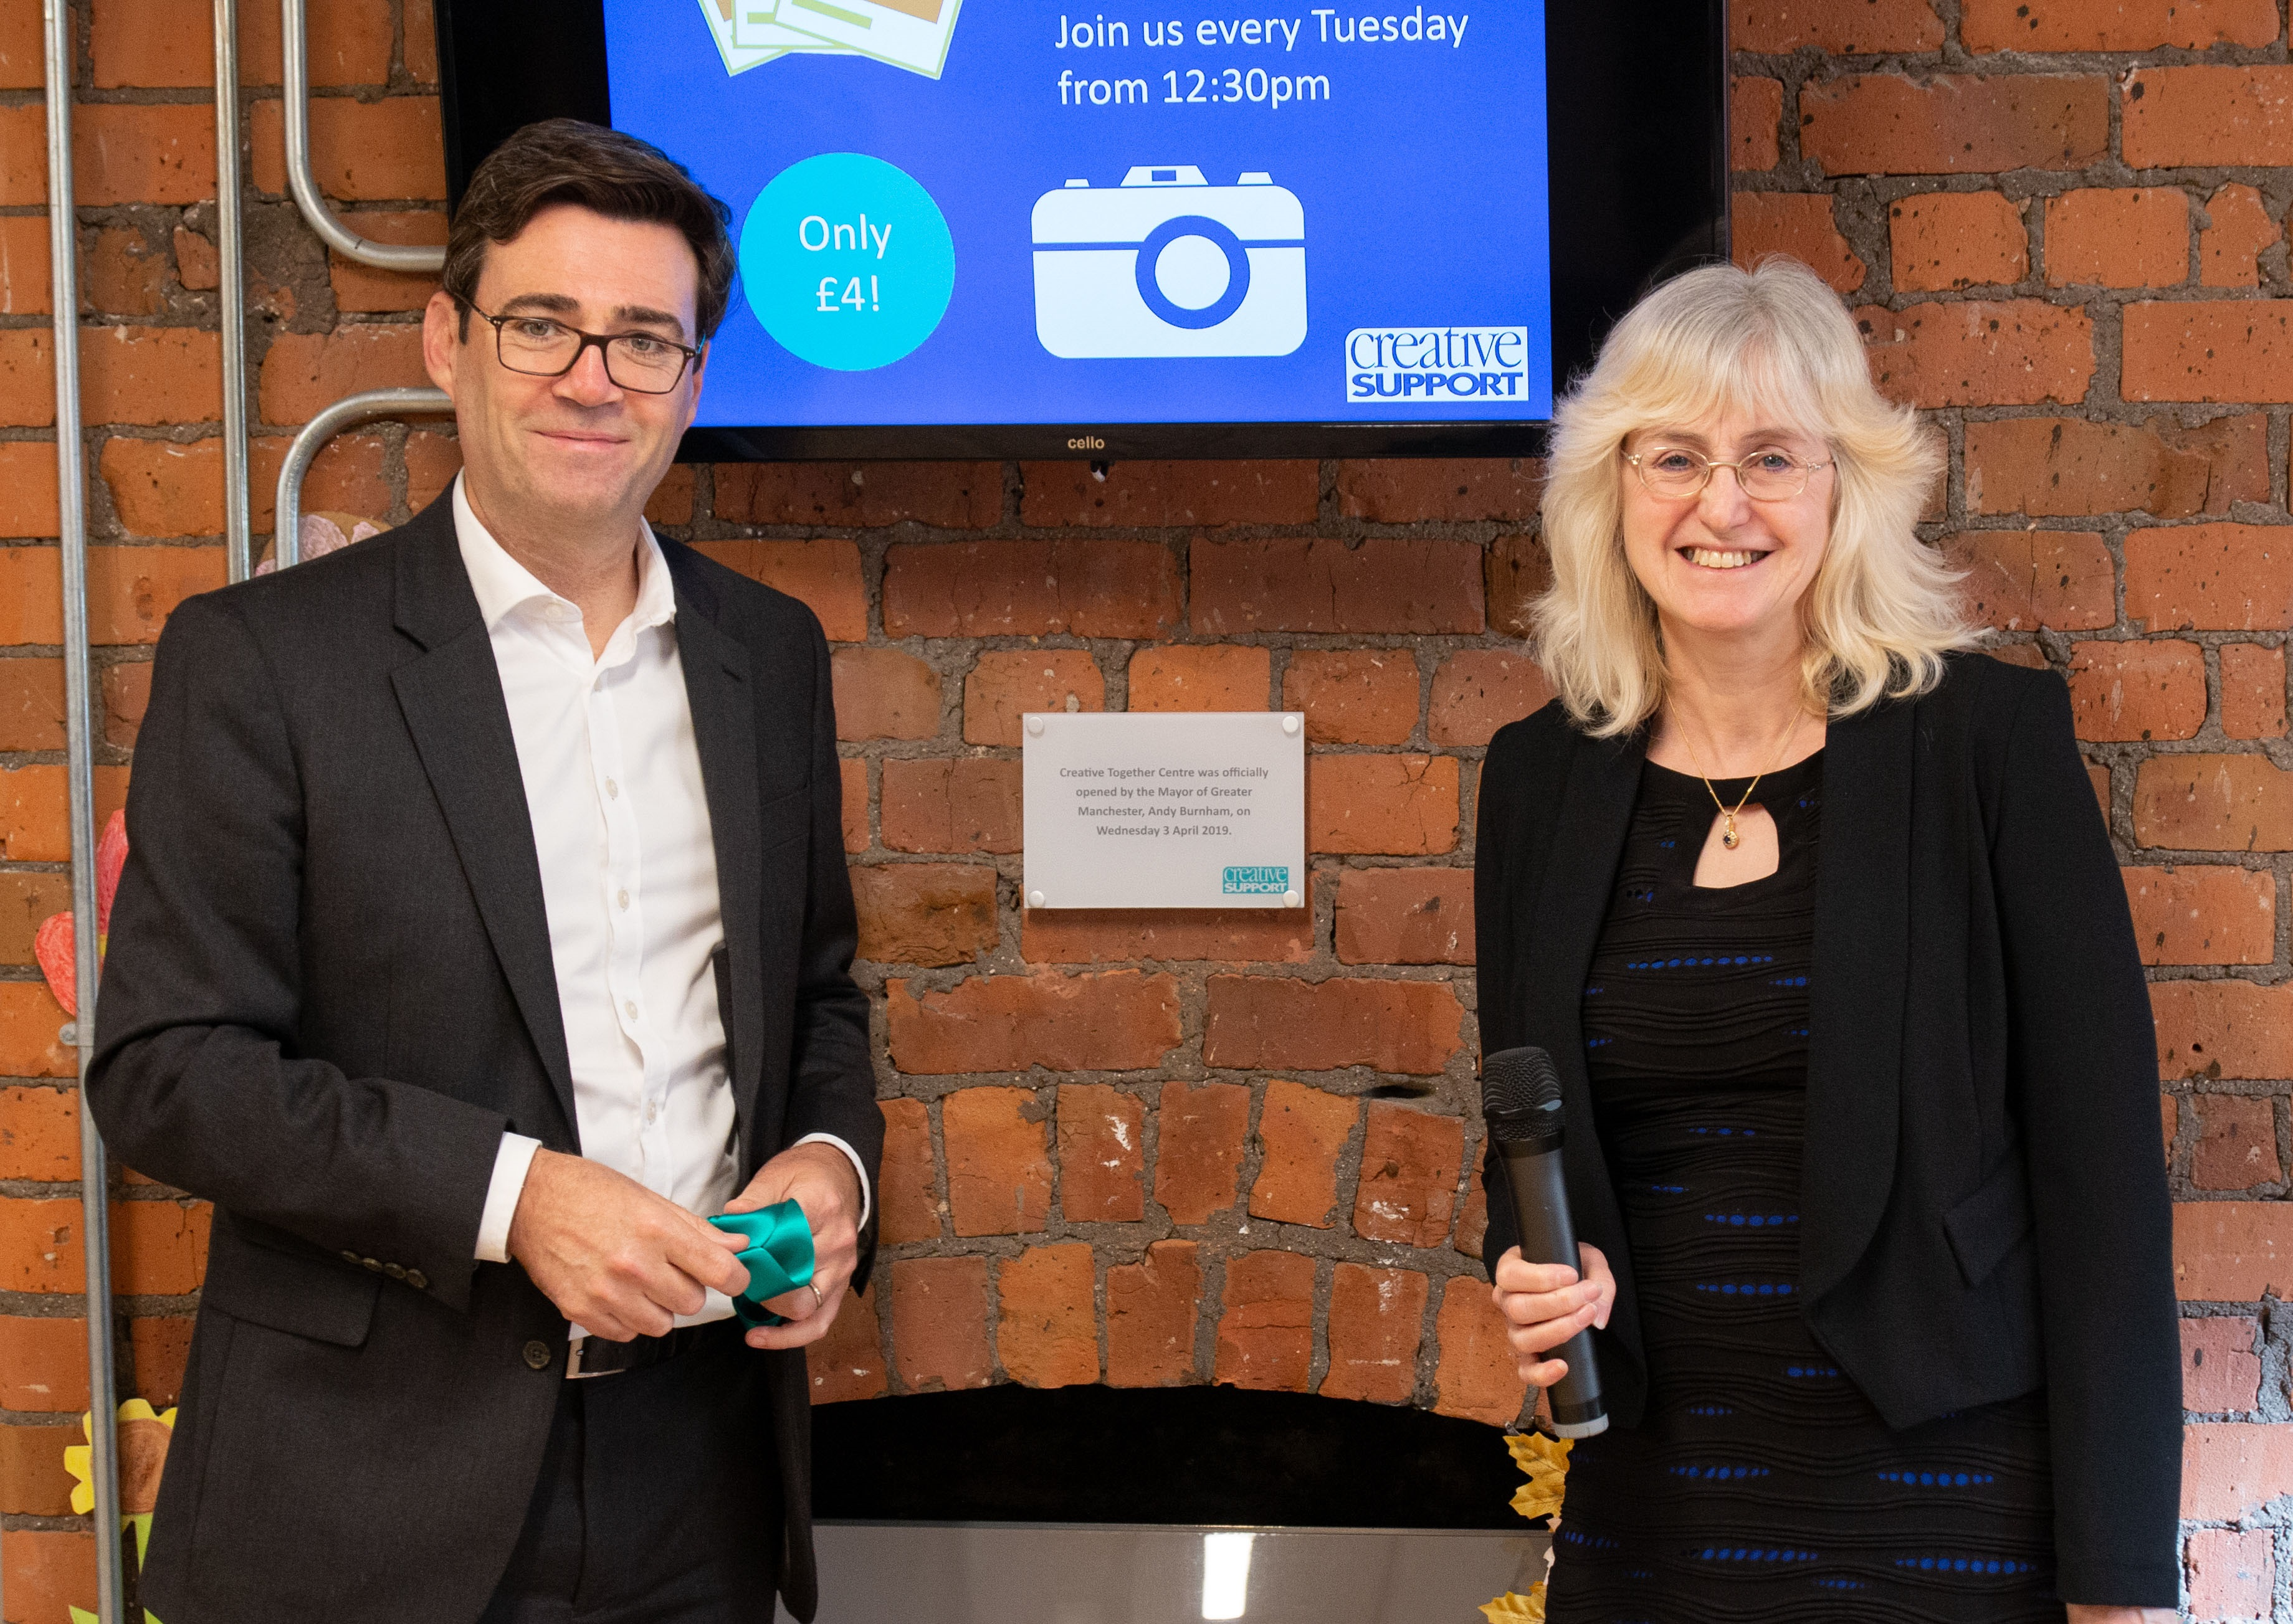 News Release – Andy Burnham visits Creative Support